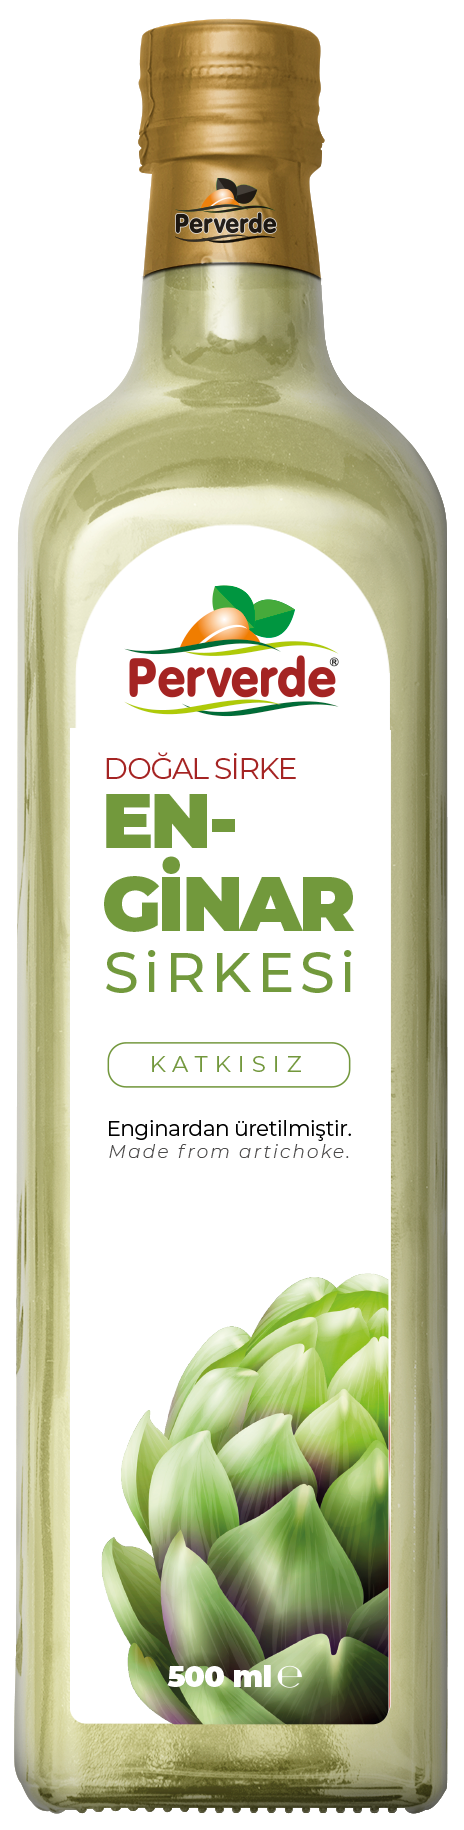 Enginar Sirkesi